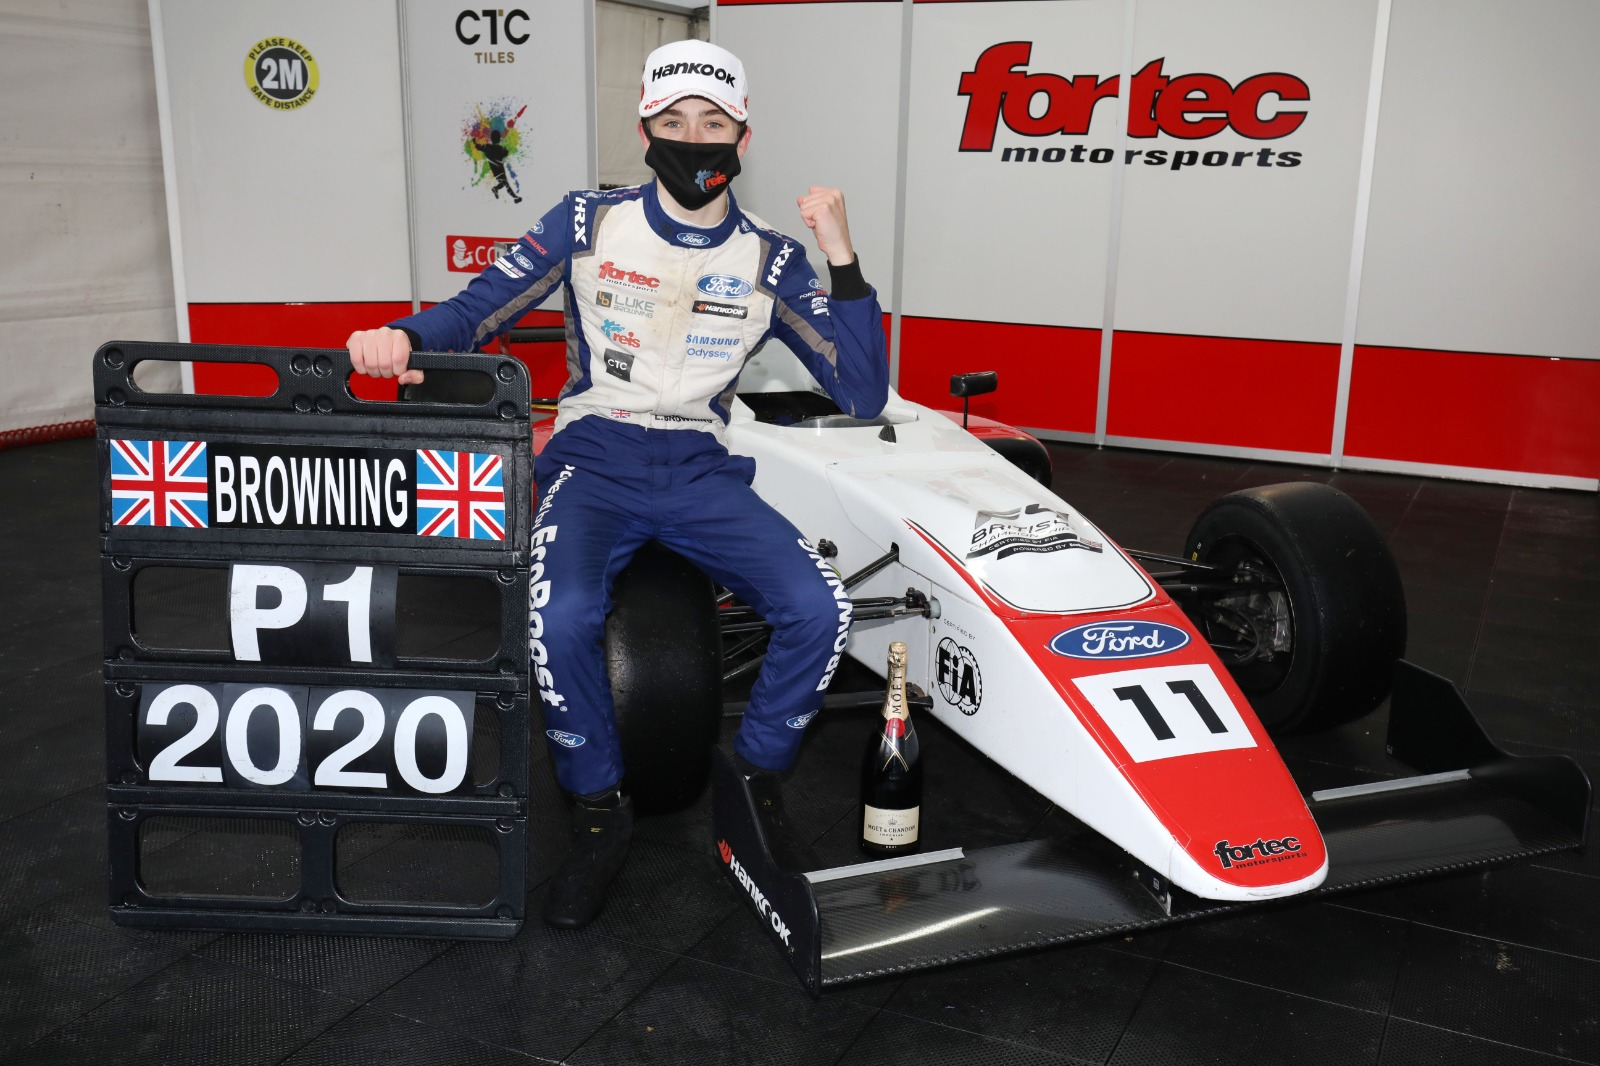 LUKE BROWNING CROWNED BRITISH F4 CHAMPION 2020 IN DRAMATIC FINALE